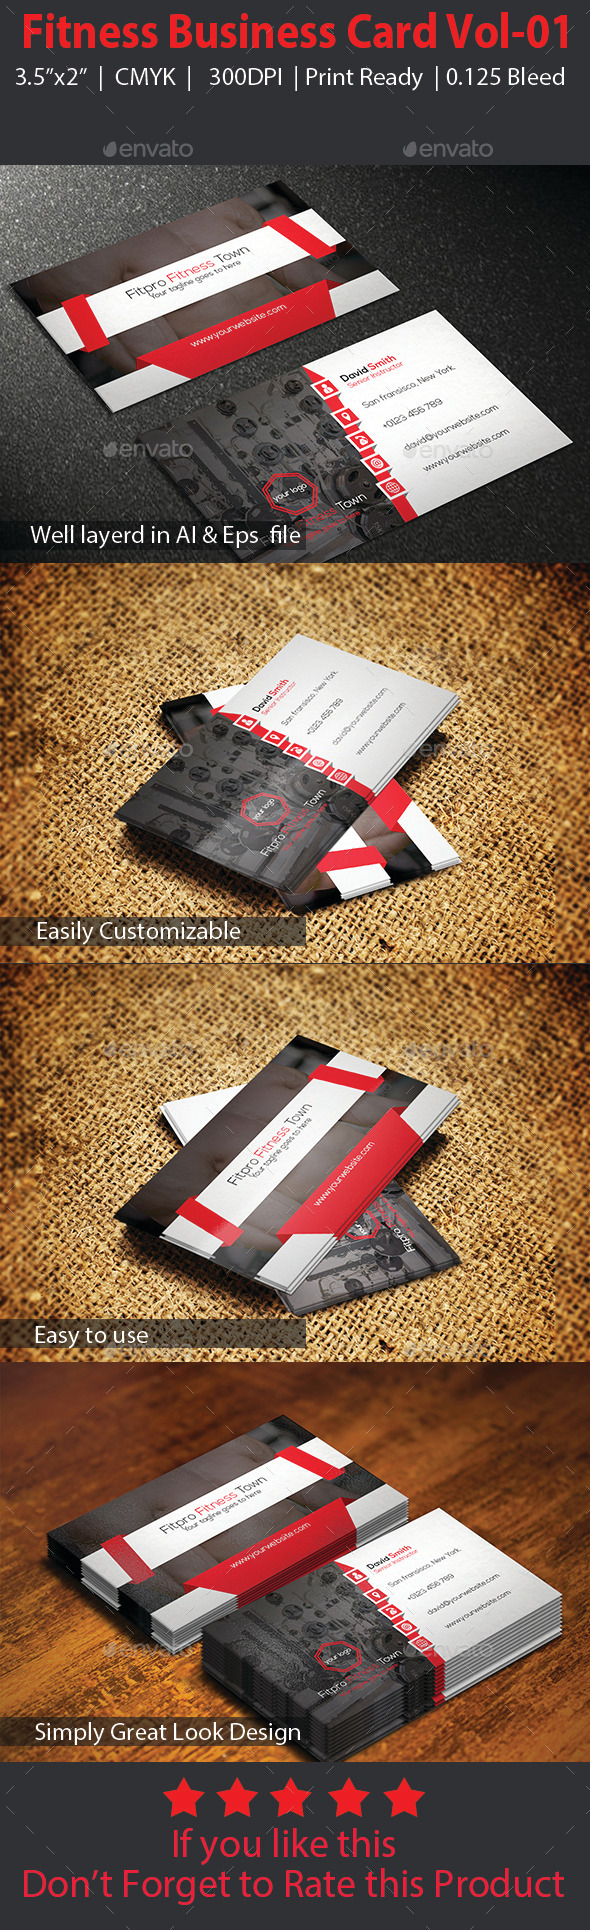 GraphicRiver Fitness Business Card Vol-01 10146196